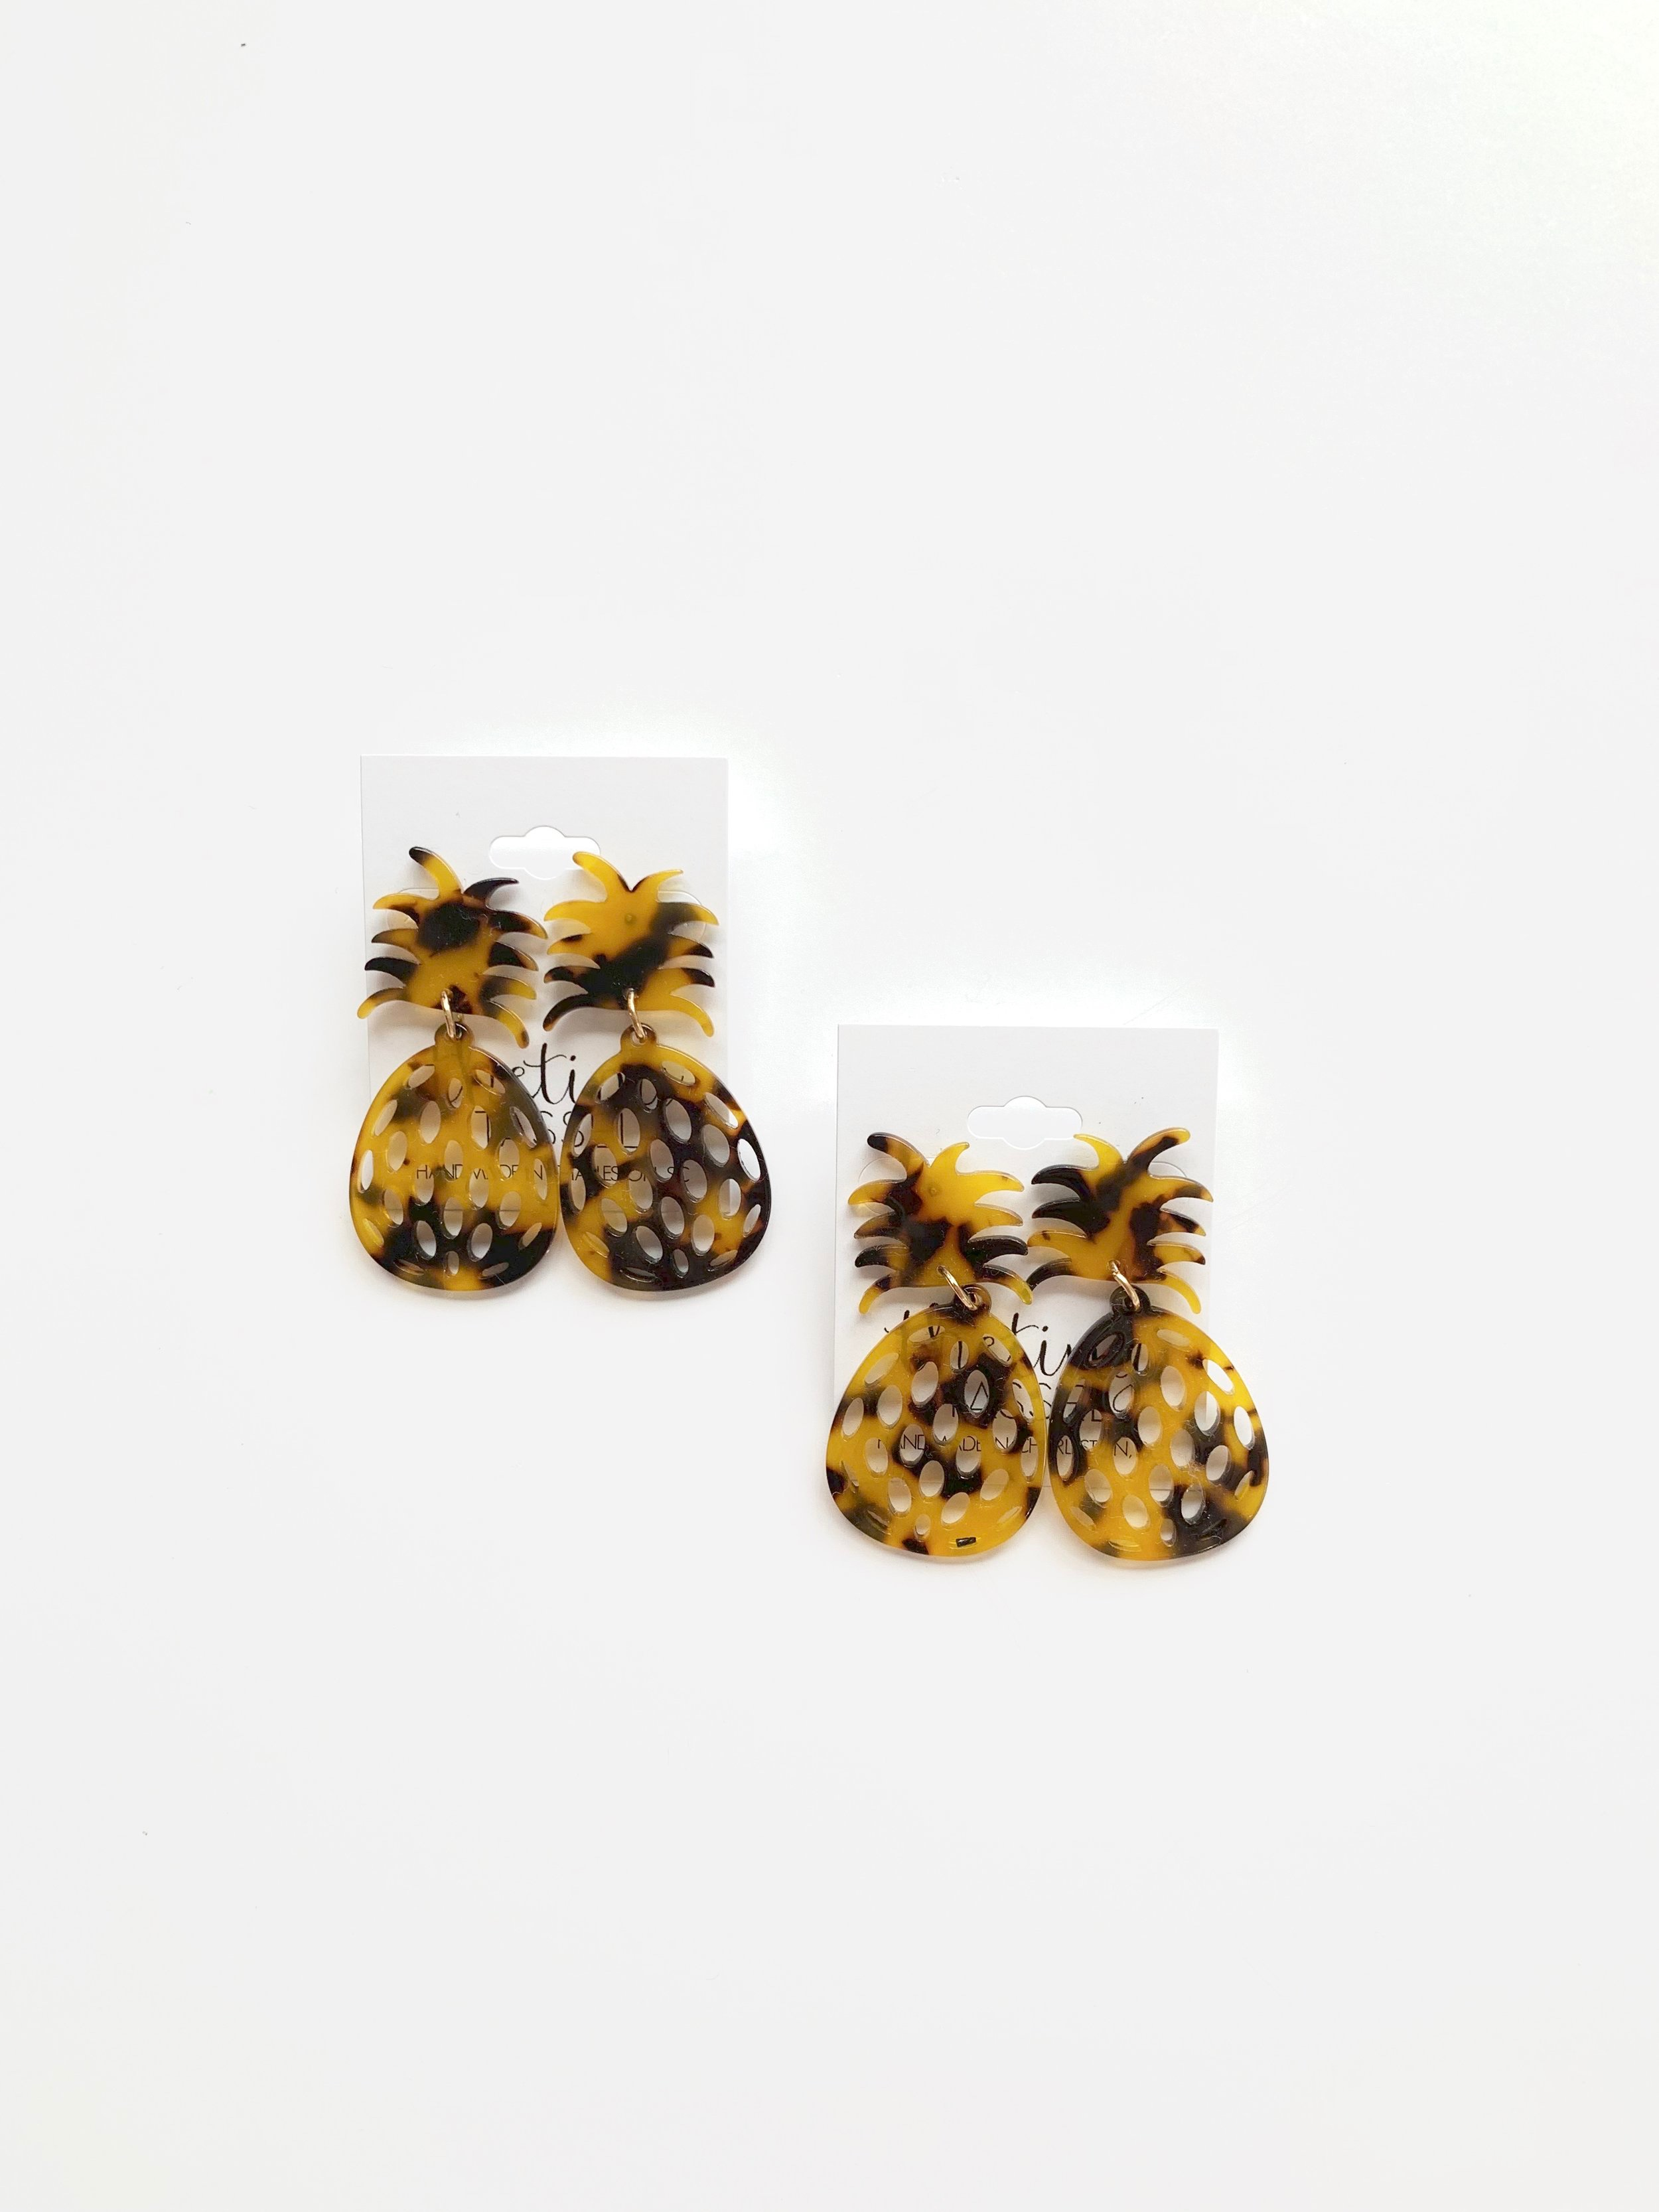 Shop our Shem Pineapple Earrings   here  !